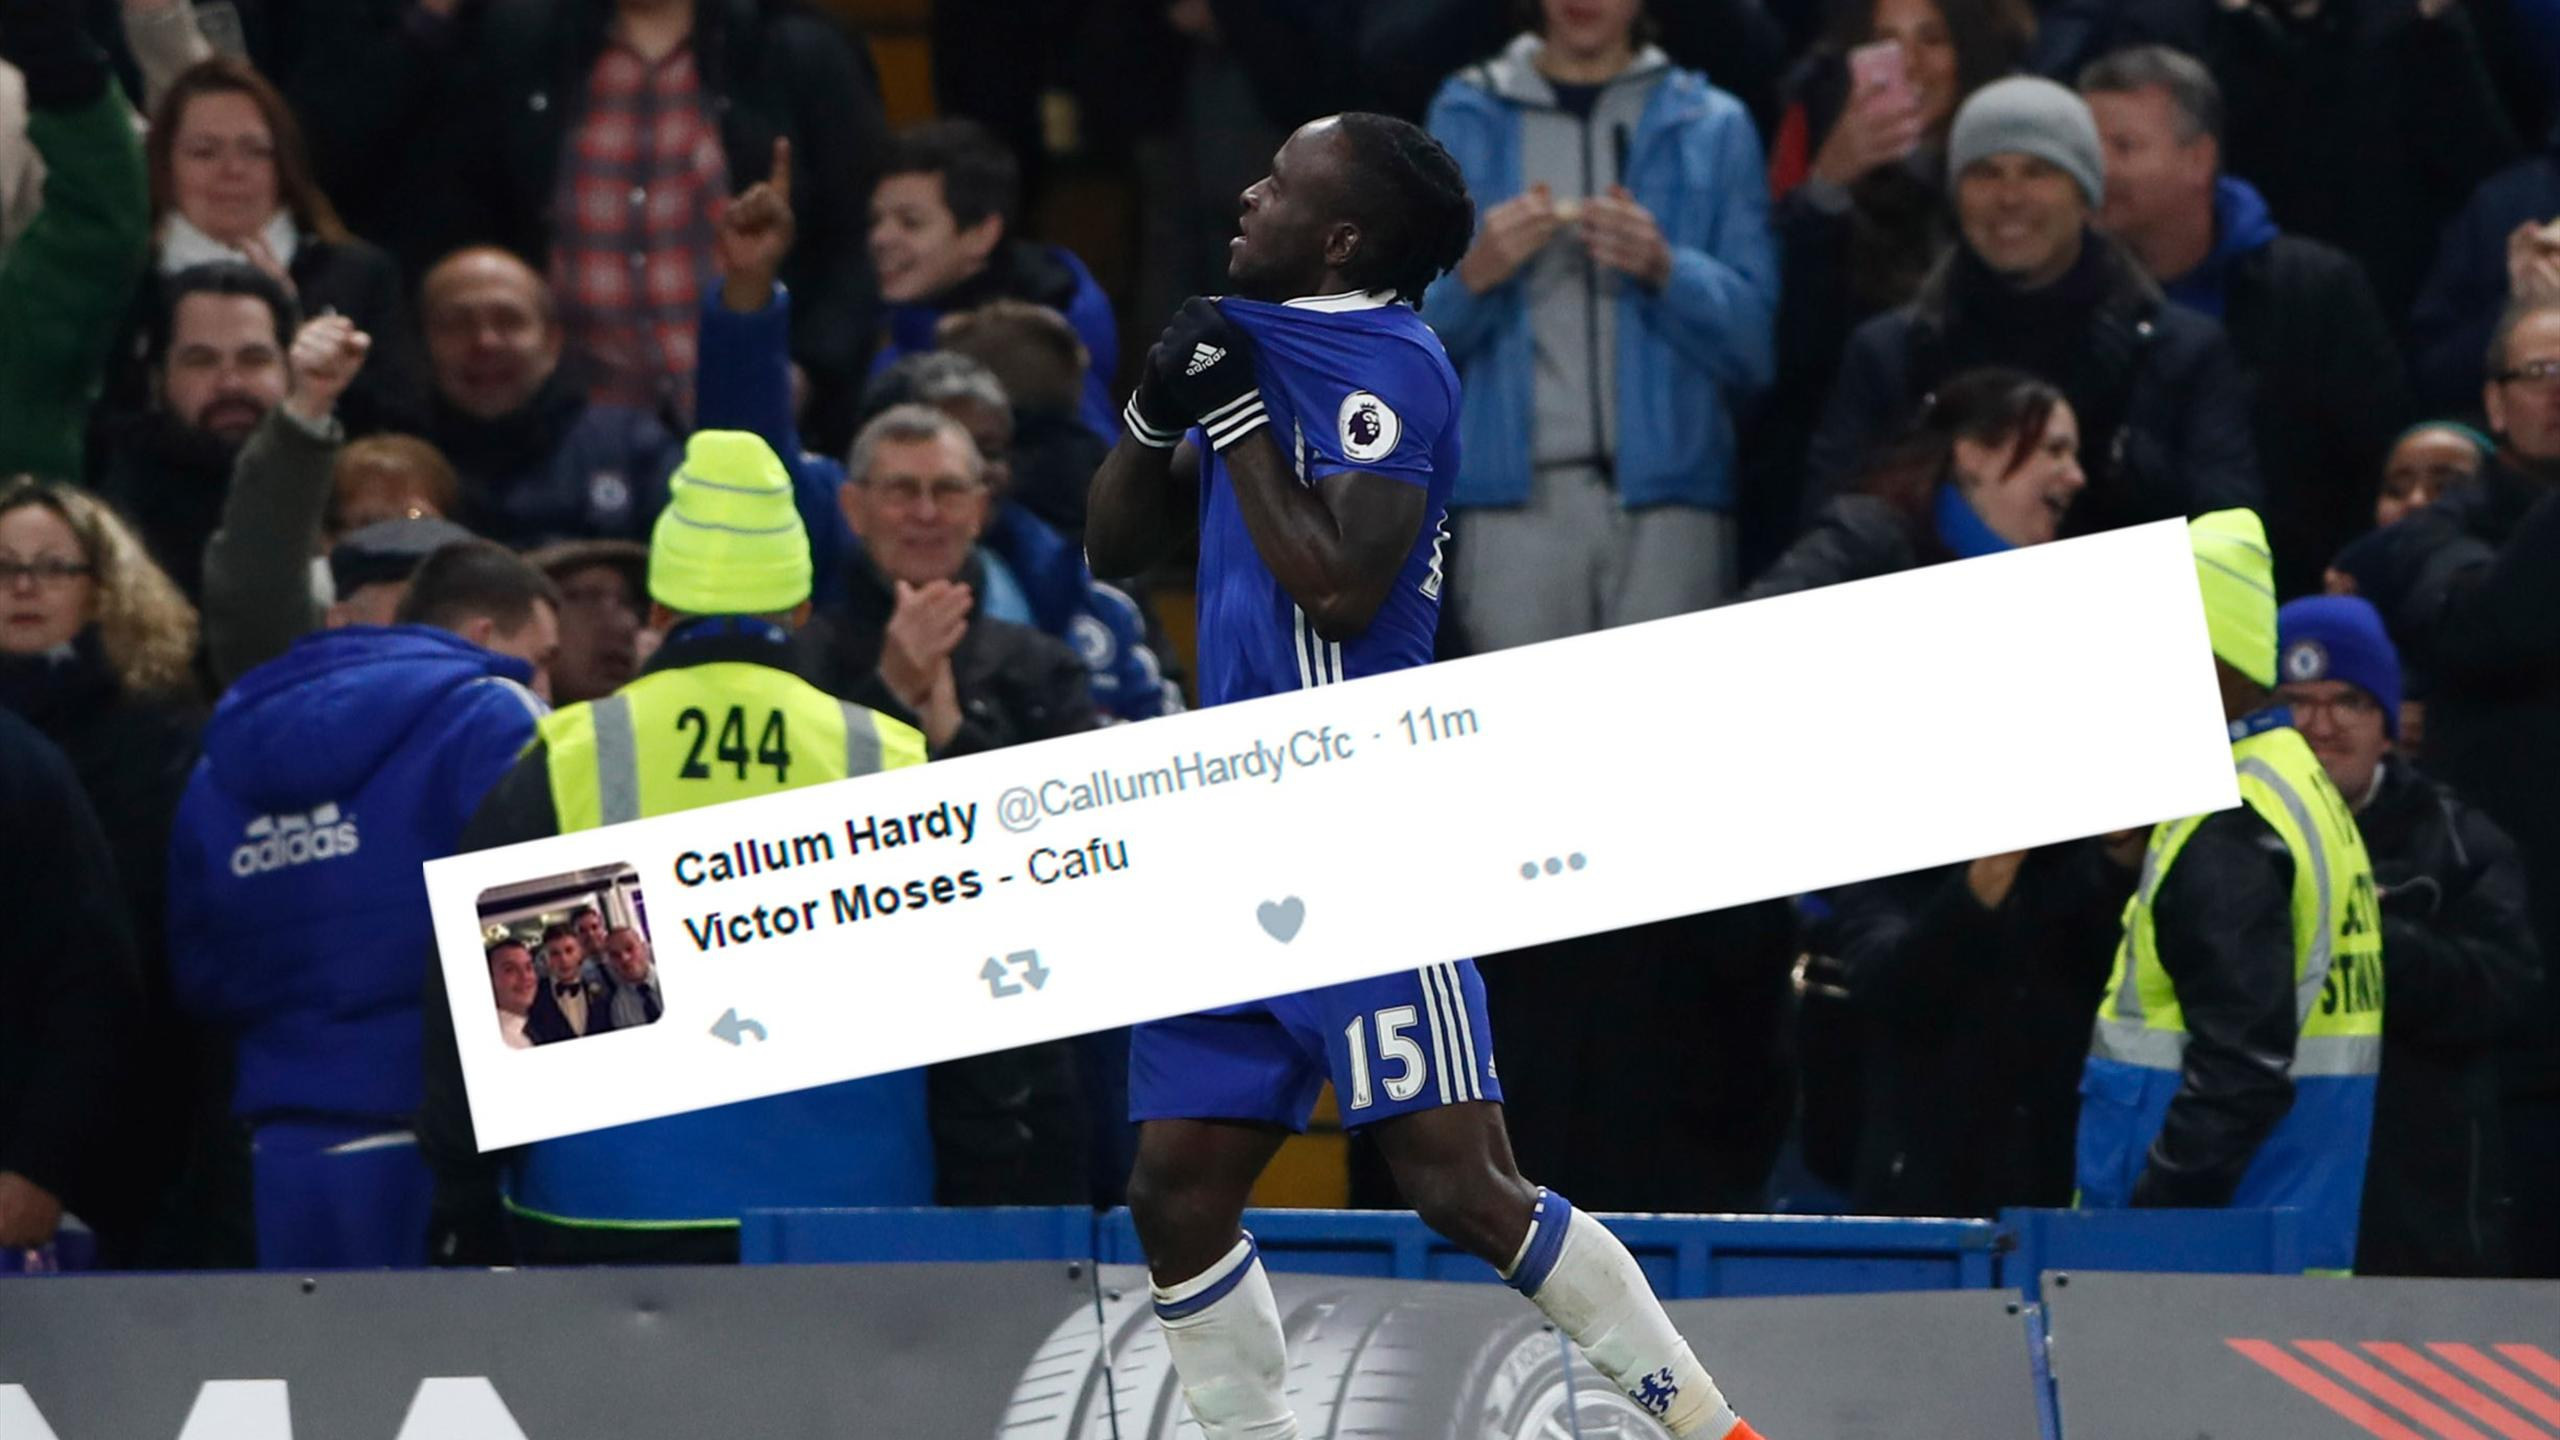 Chelsea's Victor Moses and Twitter reaction